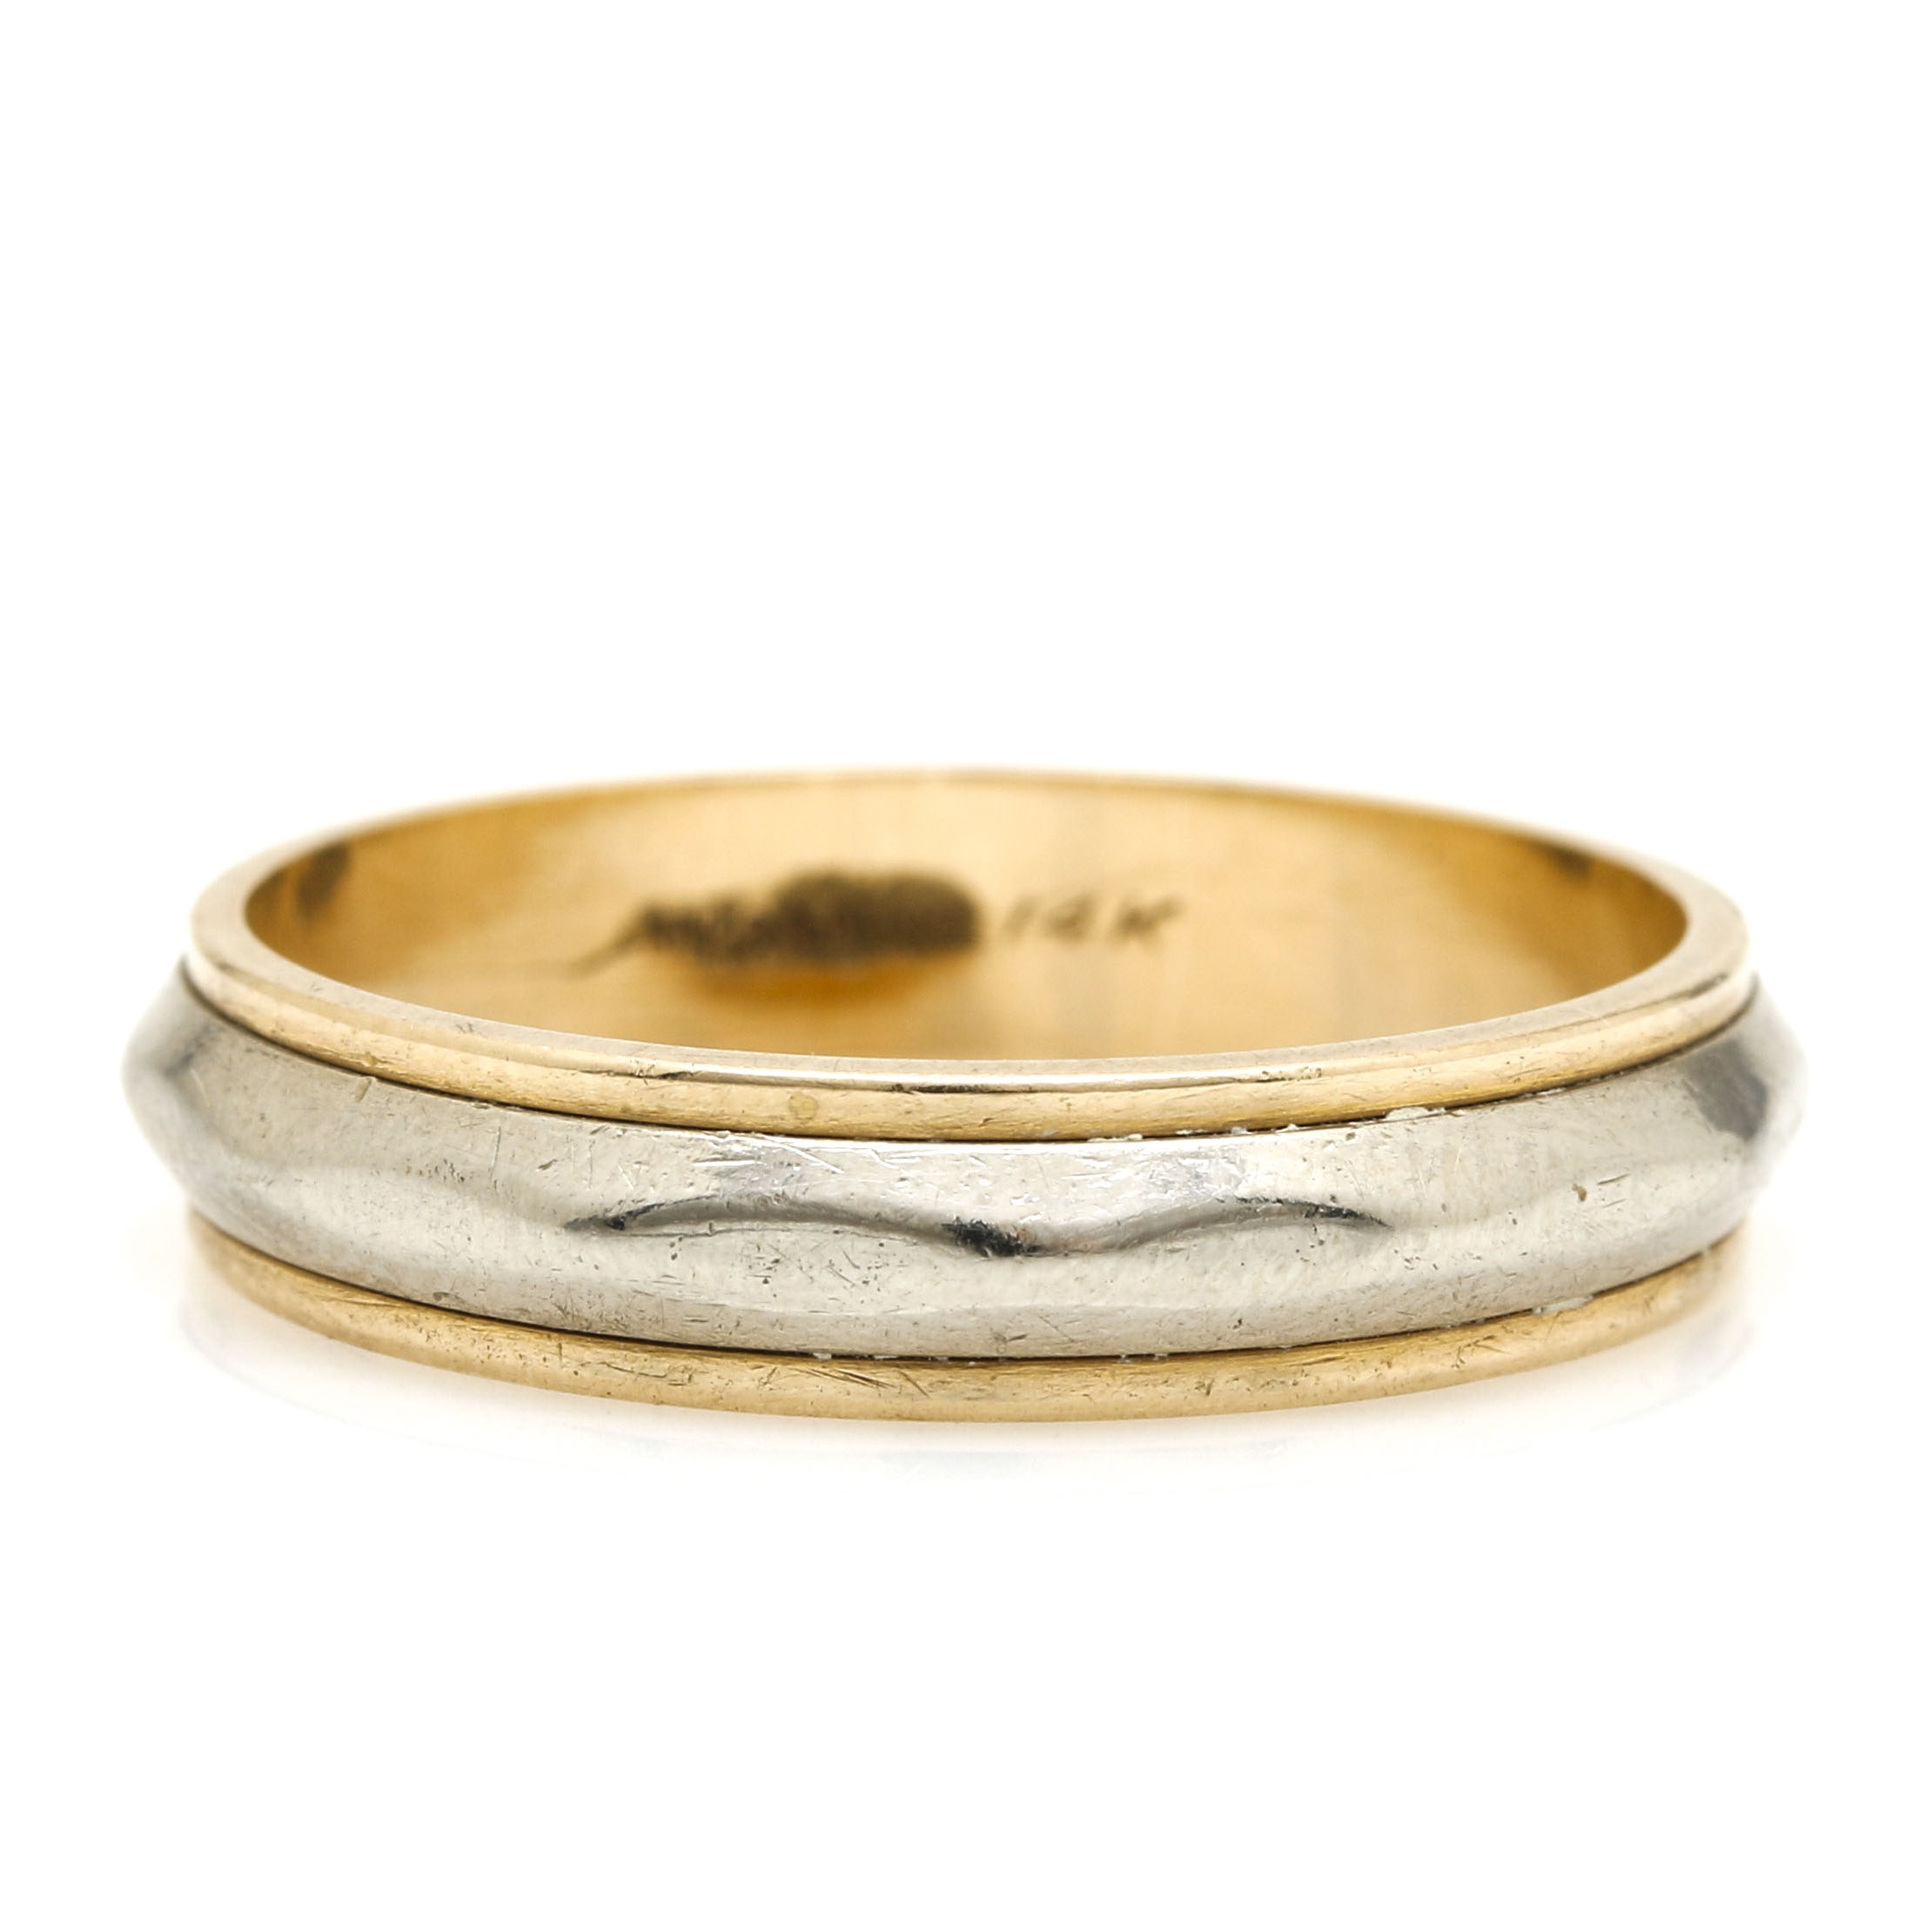 Rings O' Bliss 14K Yellow and White Wedding Band